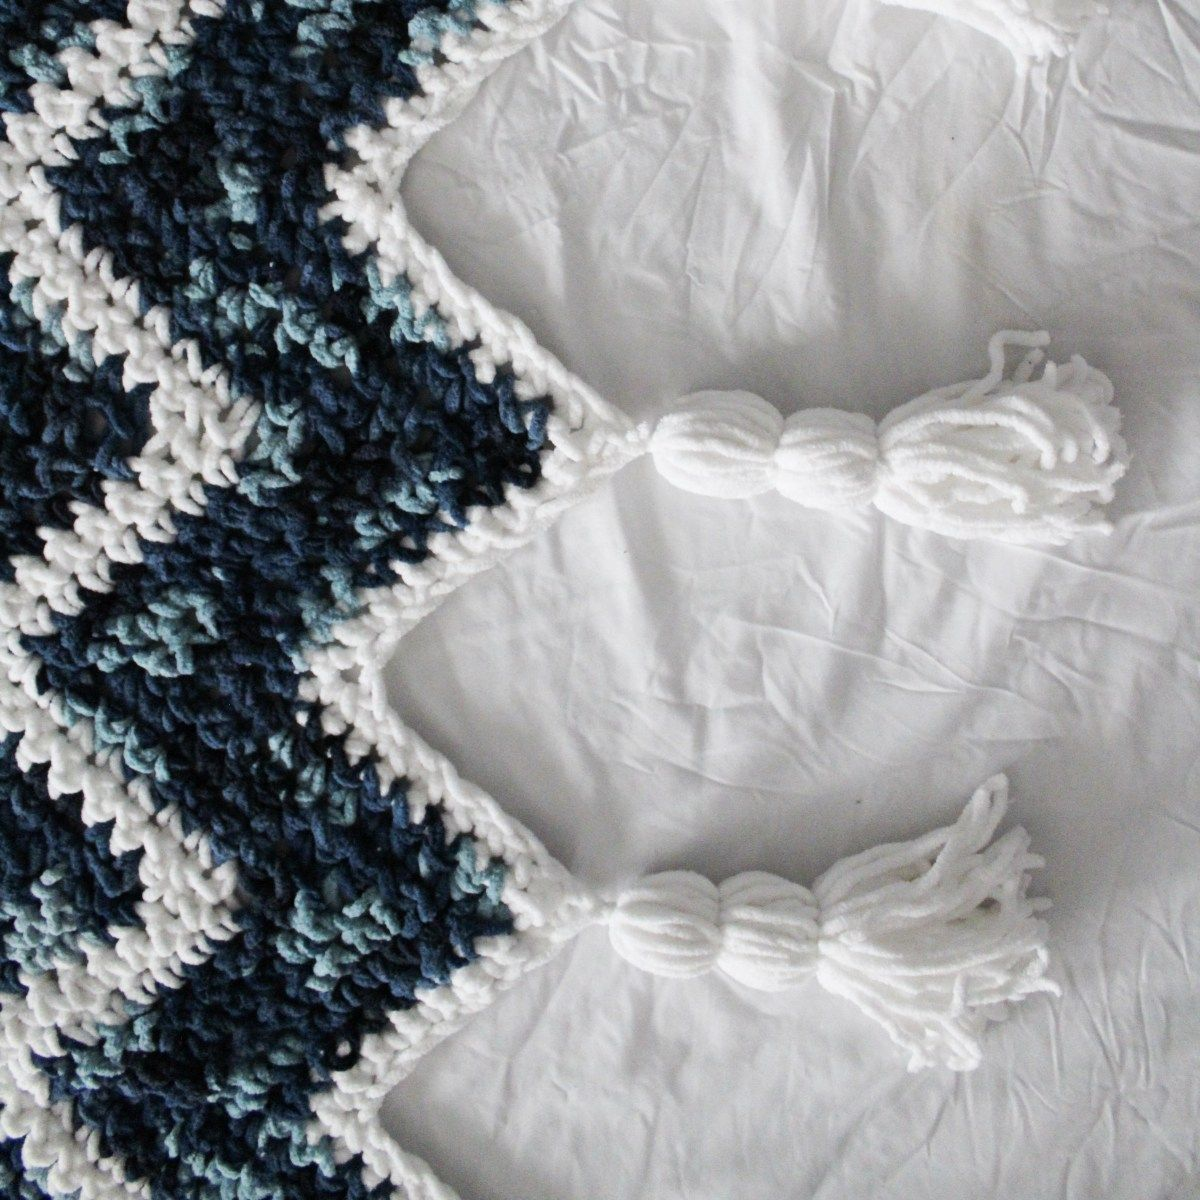 Waterfall Blanket Pattern Using Bernat Blanket Yarn | Blankets/Rugs ...